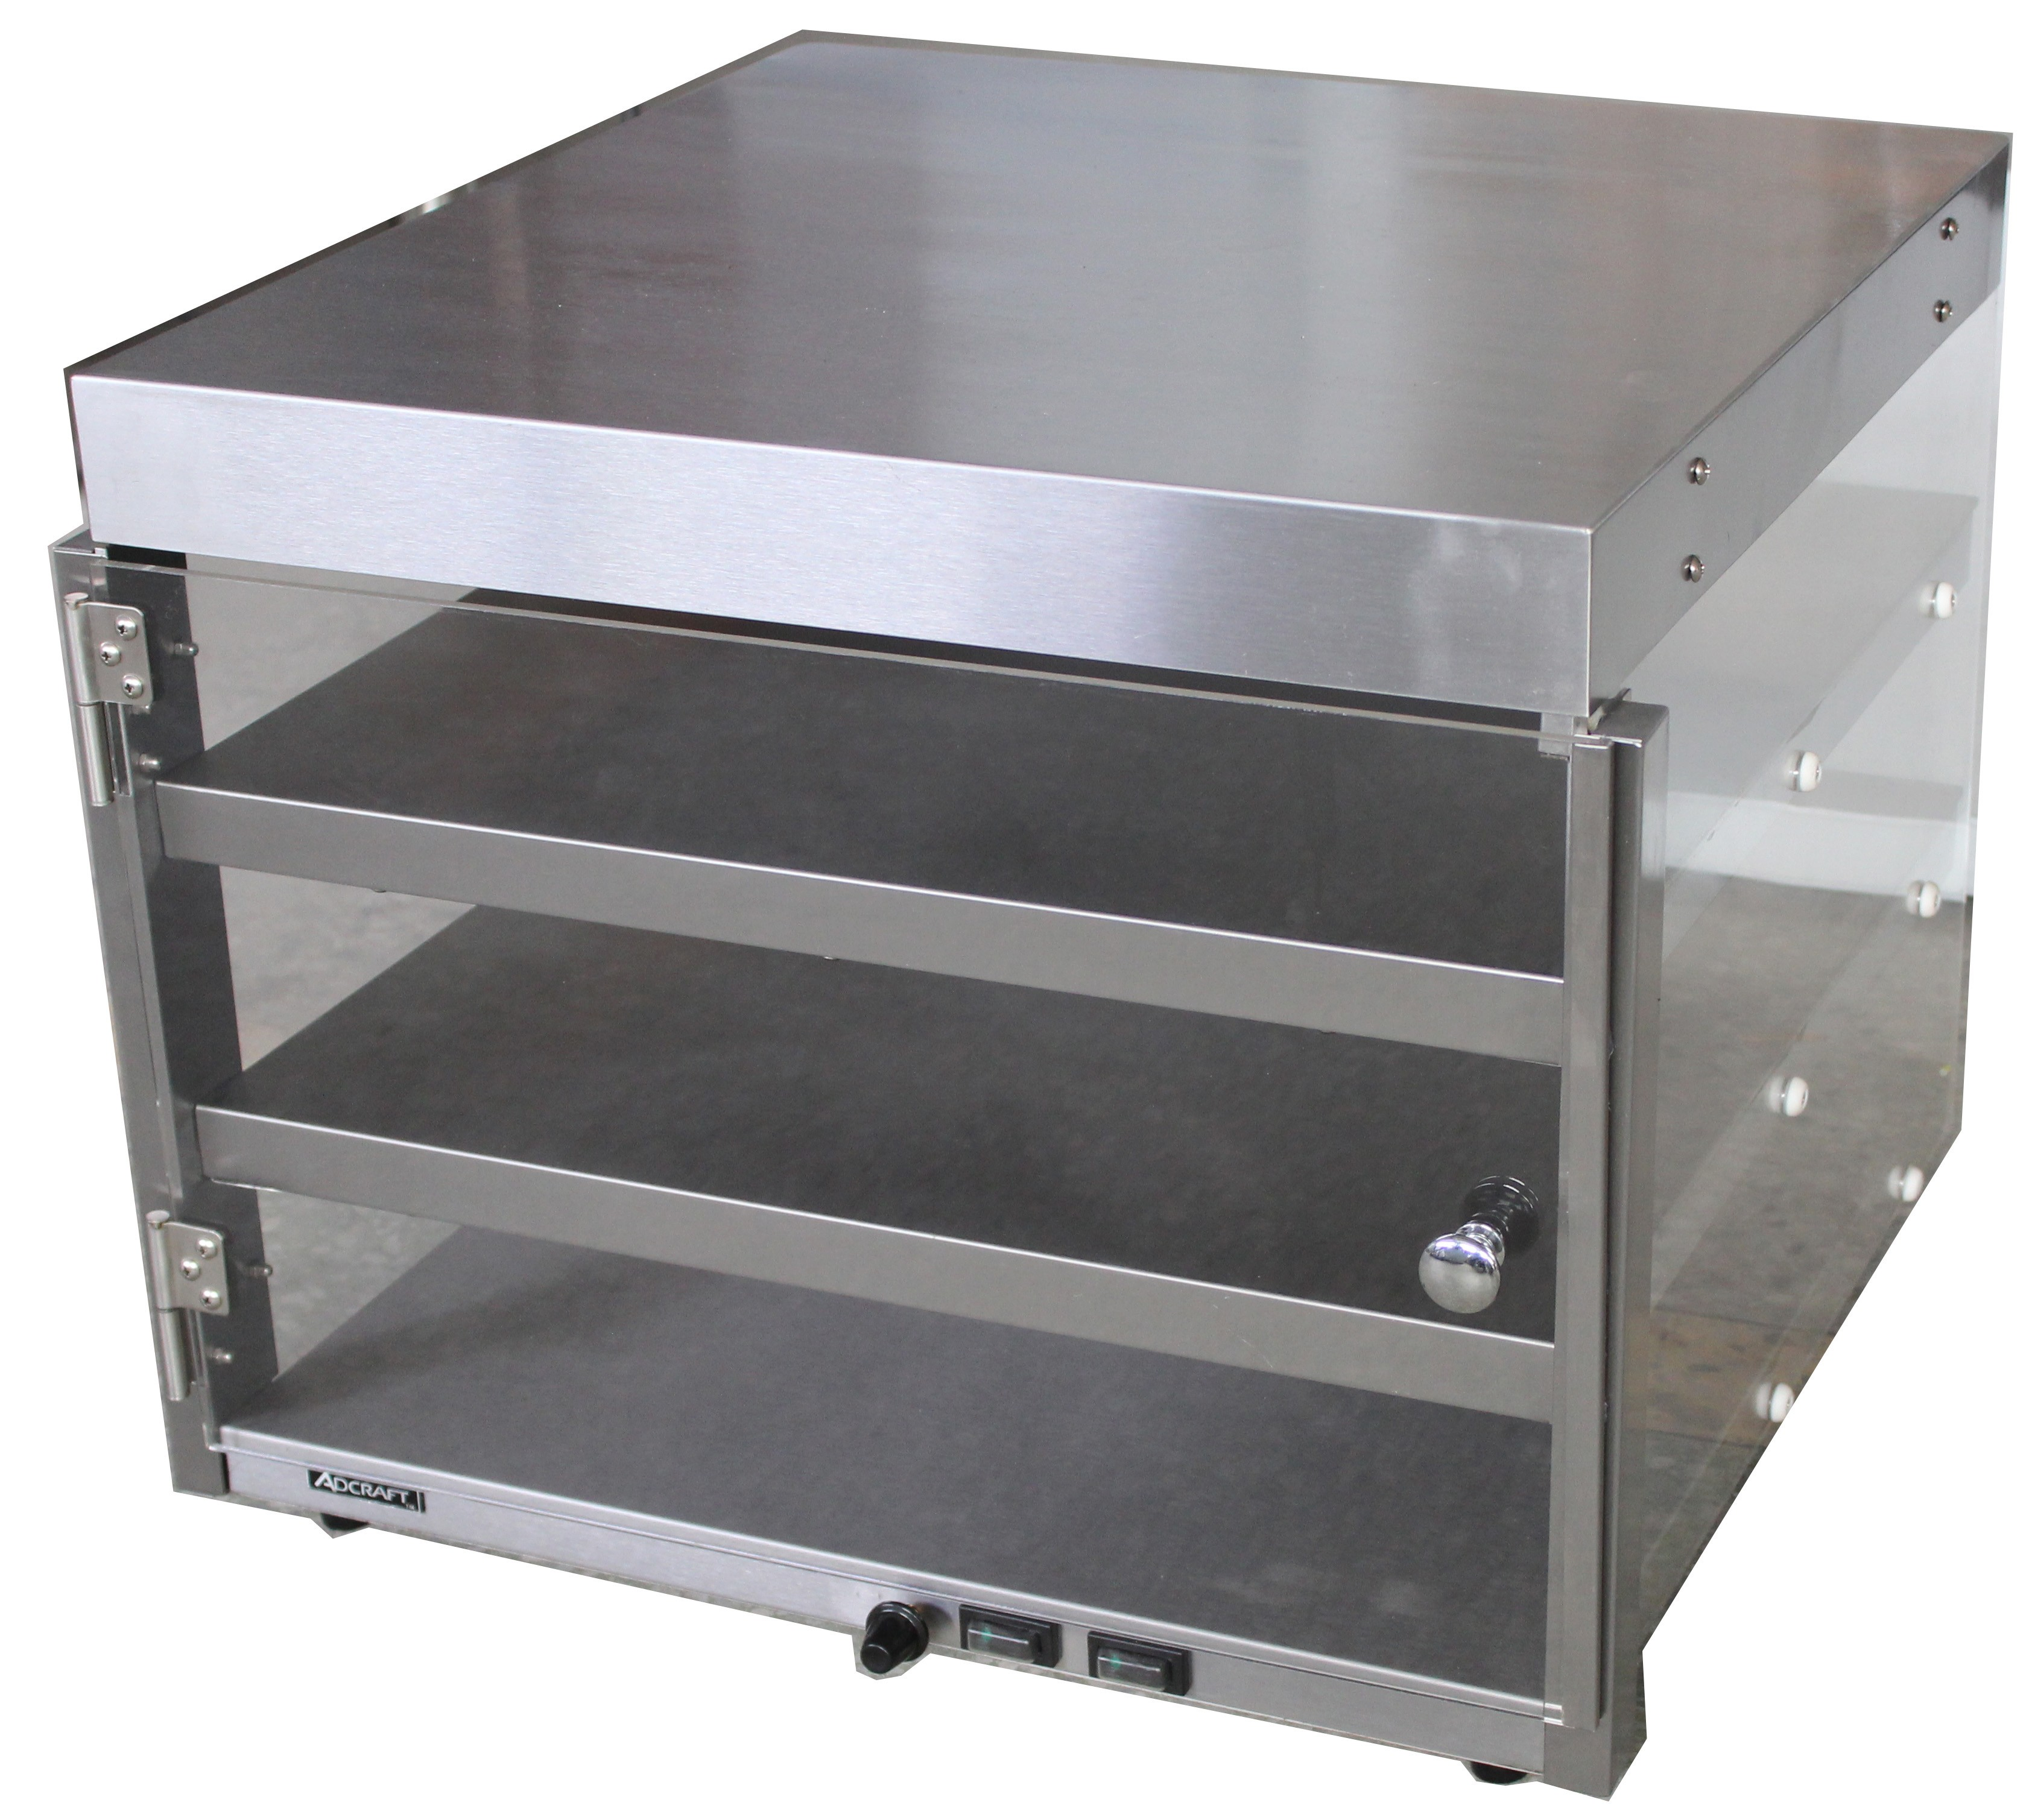 "Adcraft PW-16 Countertop Pizza Merchandiser for 16"" Pizzas"